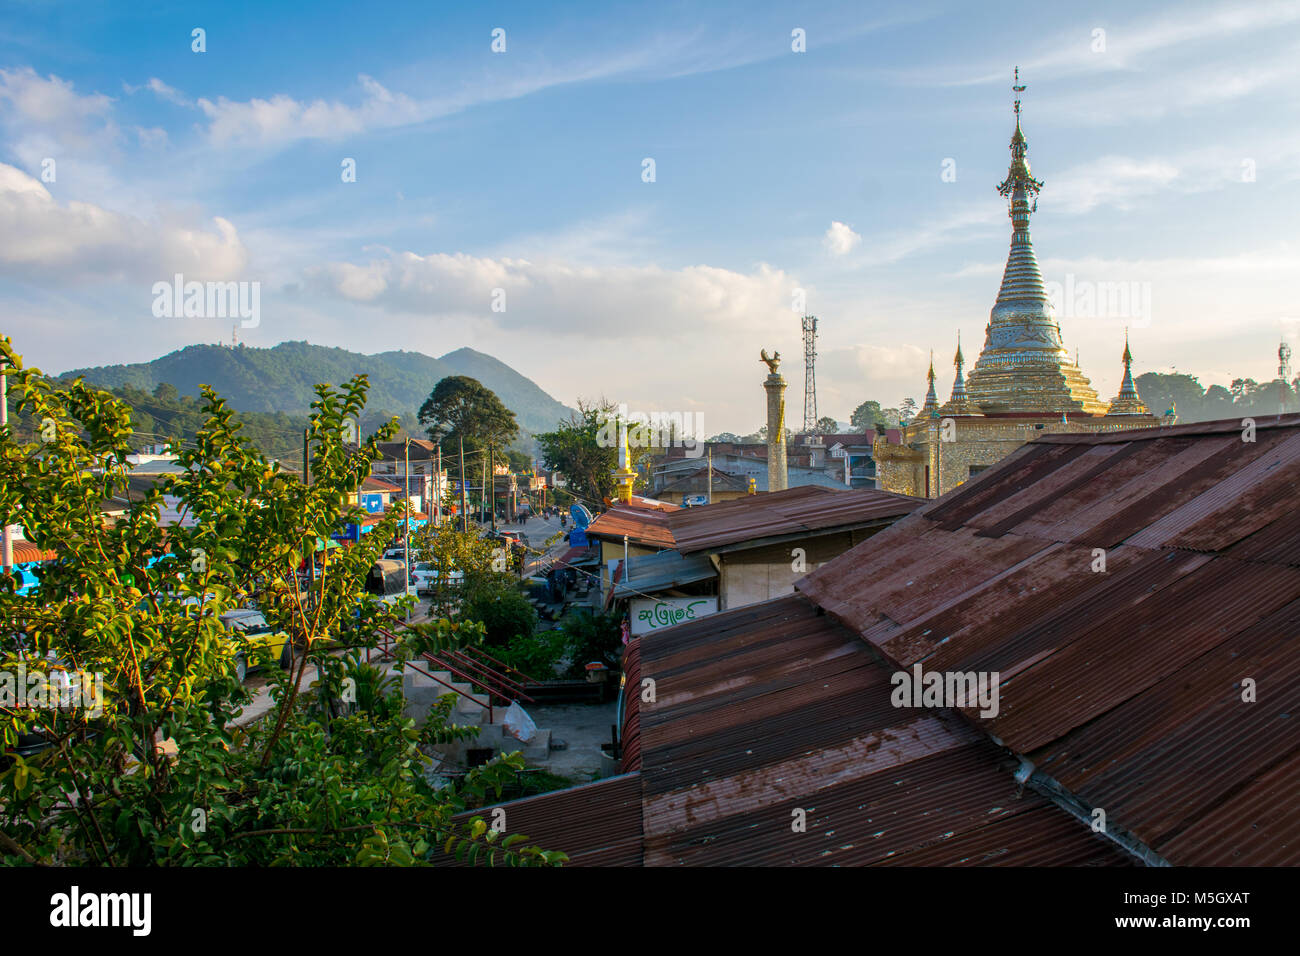 View over Kalaw in Shan State, Myanmar Stock Photo